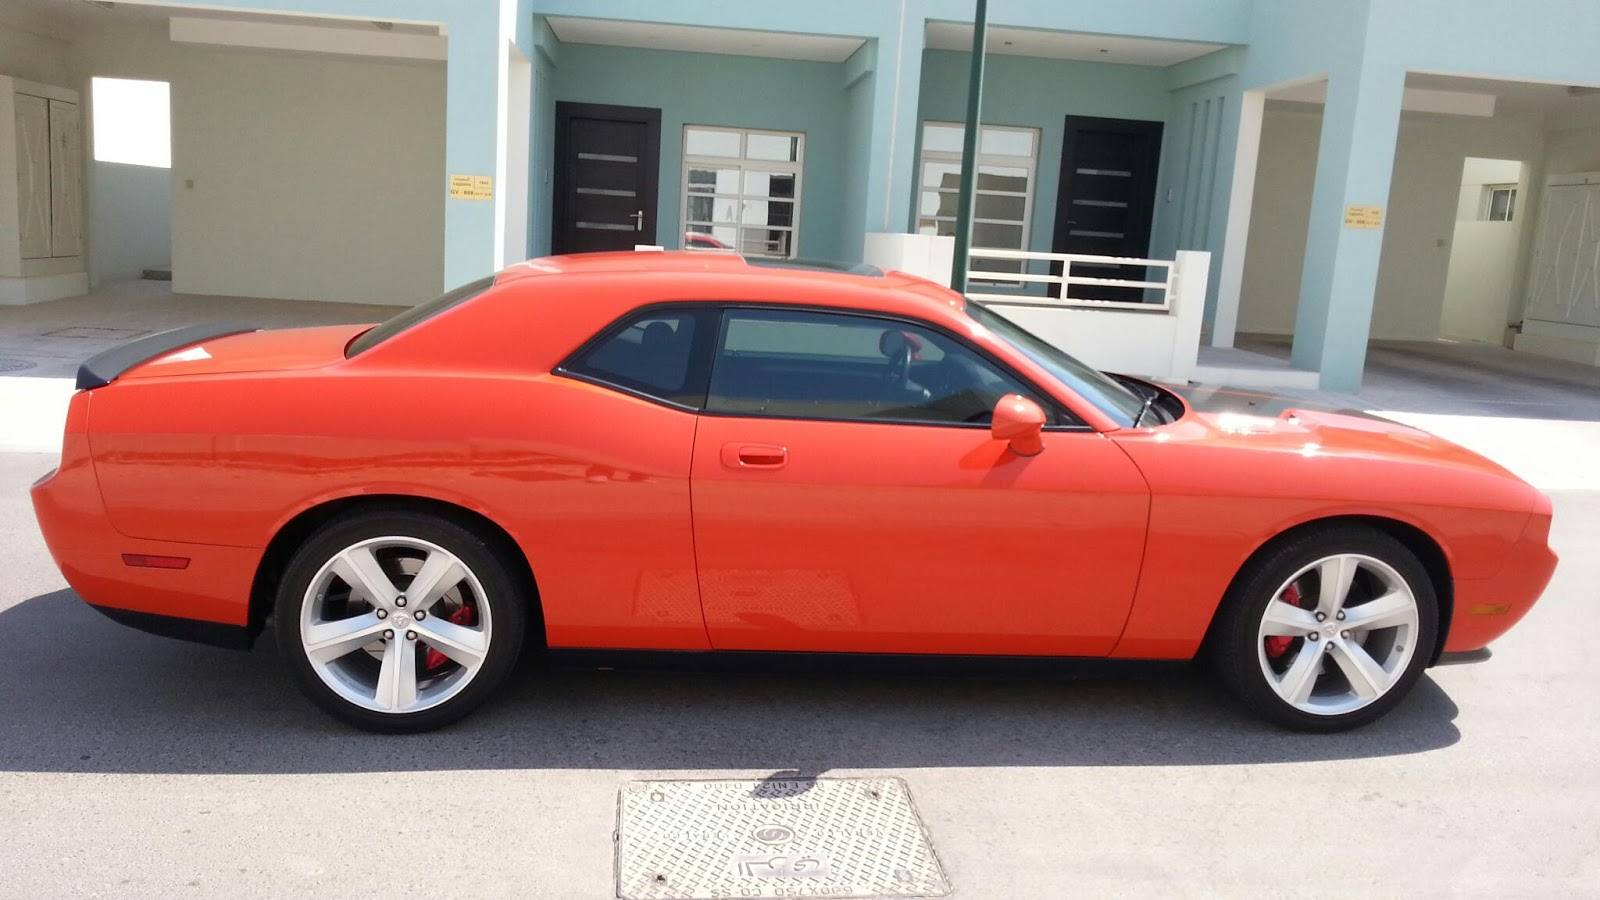 2010 dodge challenger srt8 for sale bahrain. Black Bedroom Furniture Sets. Home Design Ideas